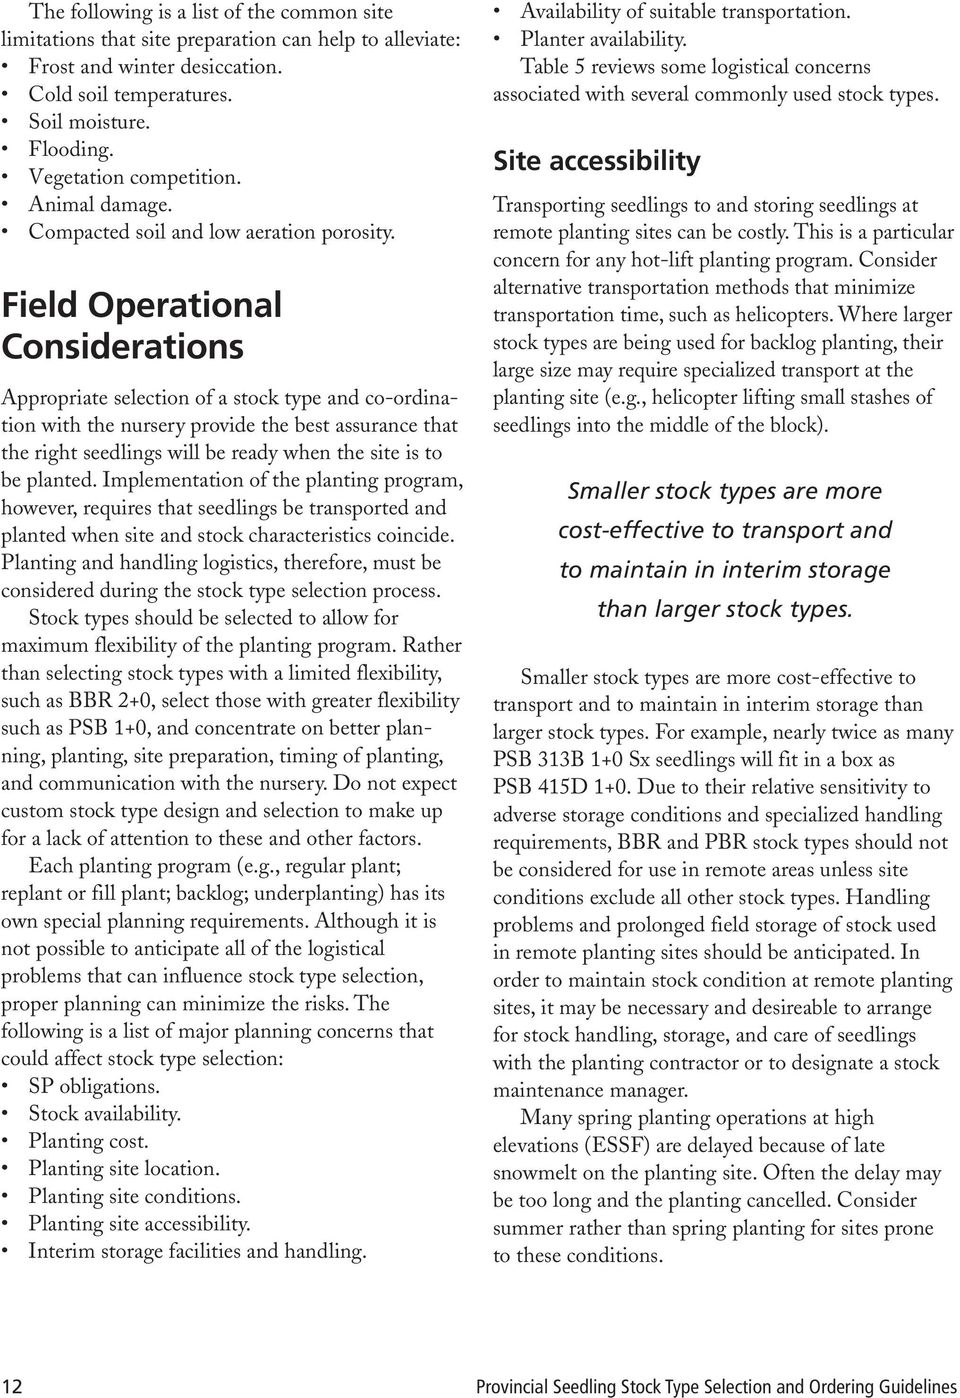 Field Operational Considerations Appropriate selection of a stock type and co-ordination with the nursery provide the best assurance that the right seedlings will be ready when the site is to be